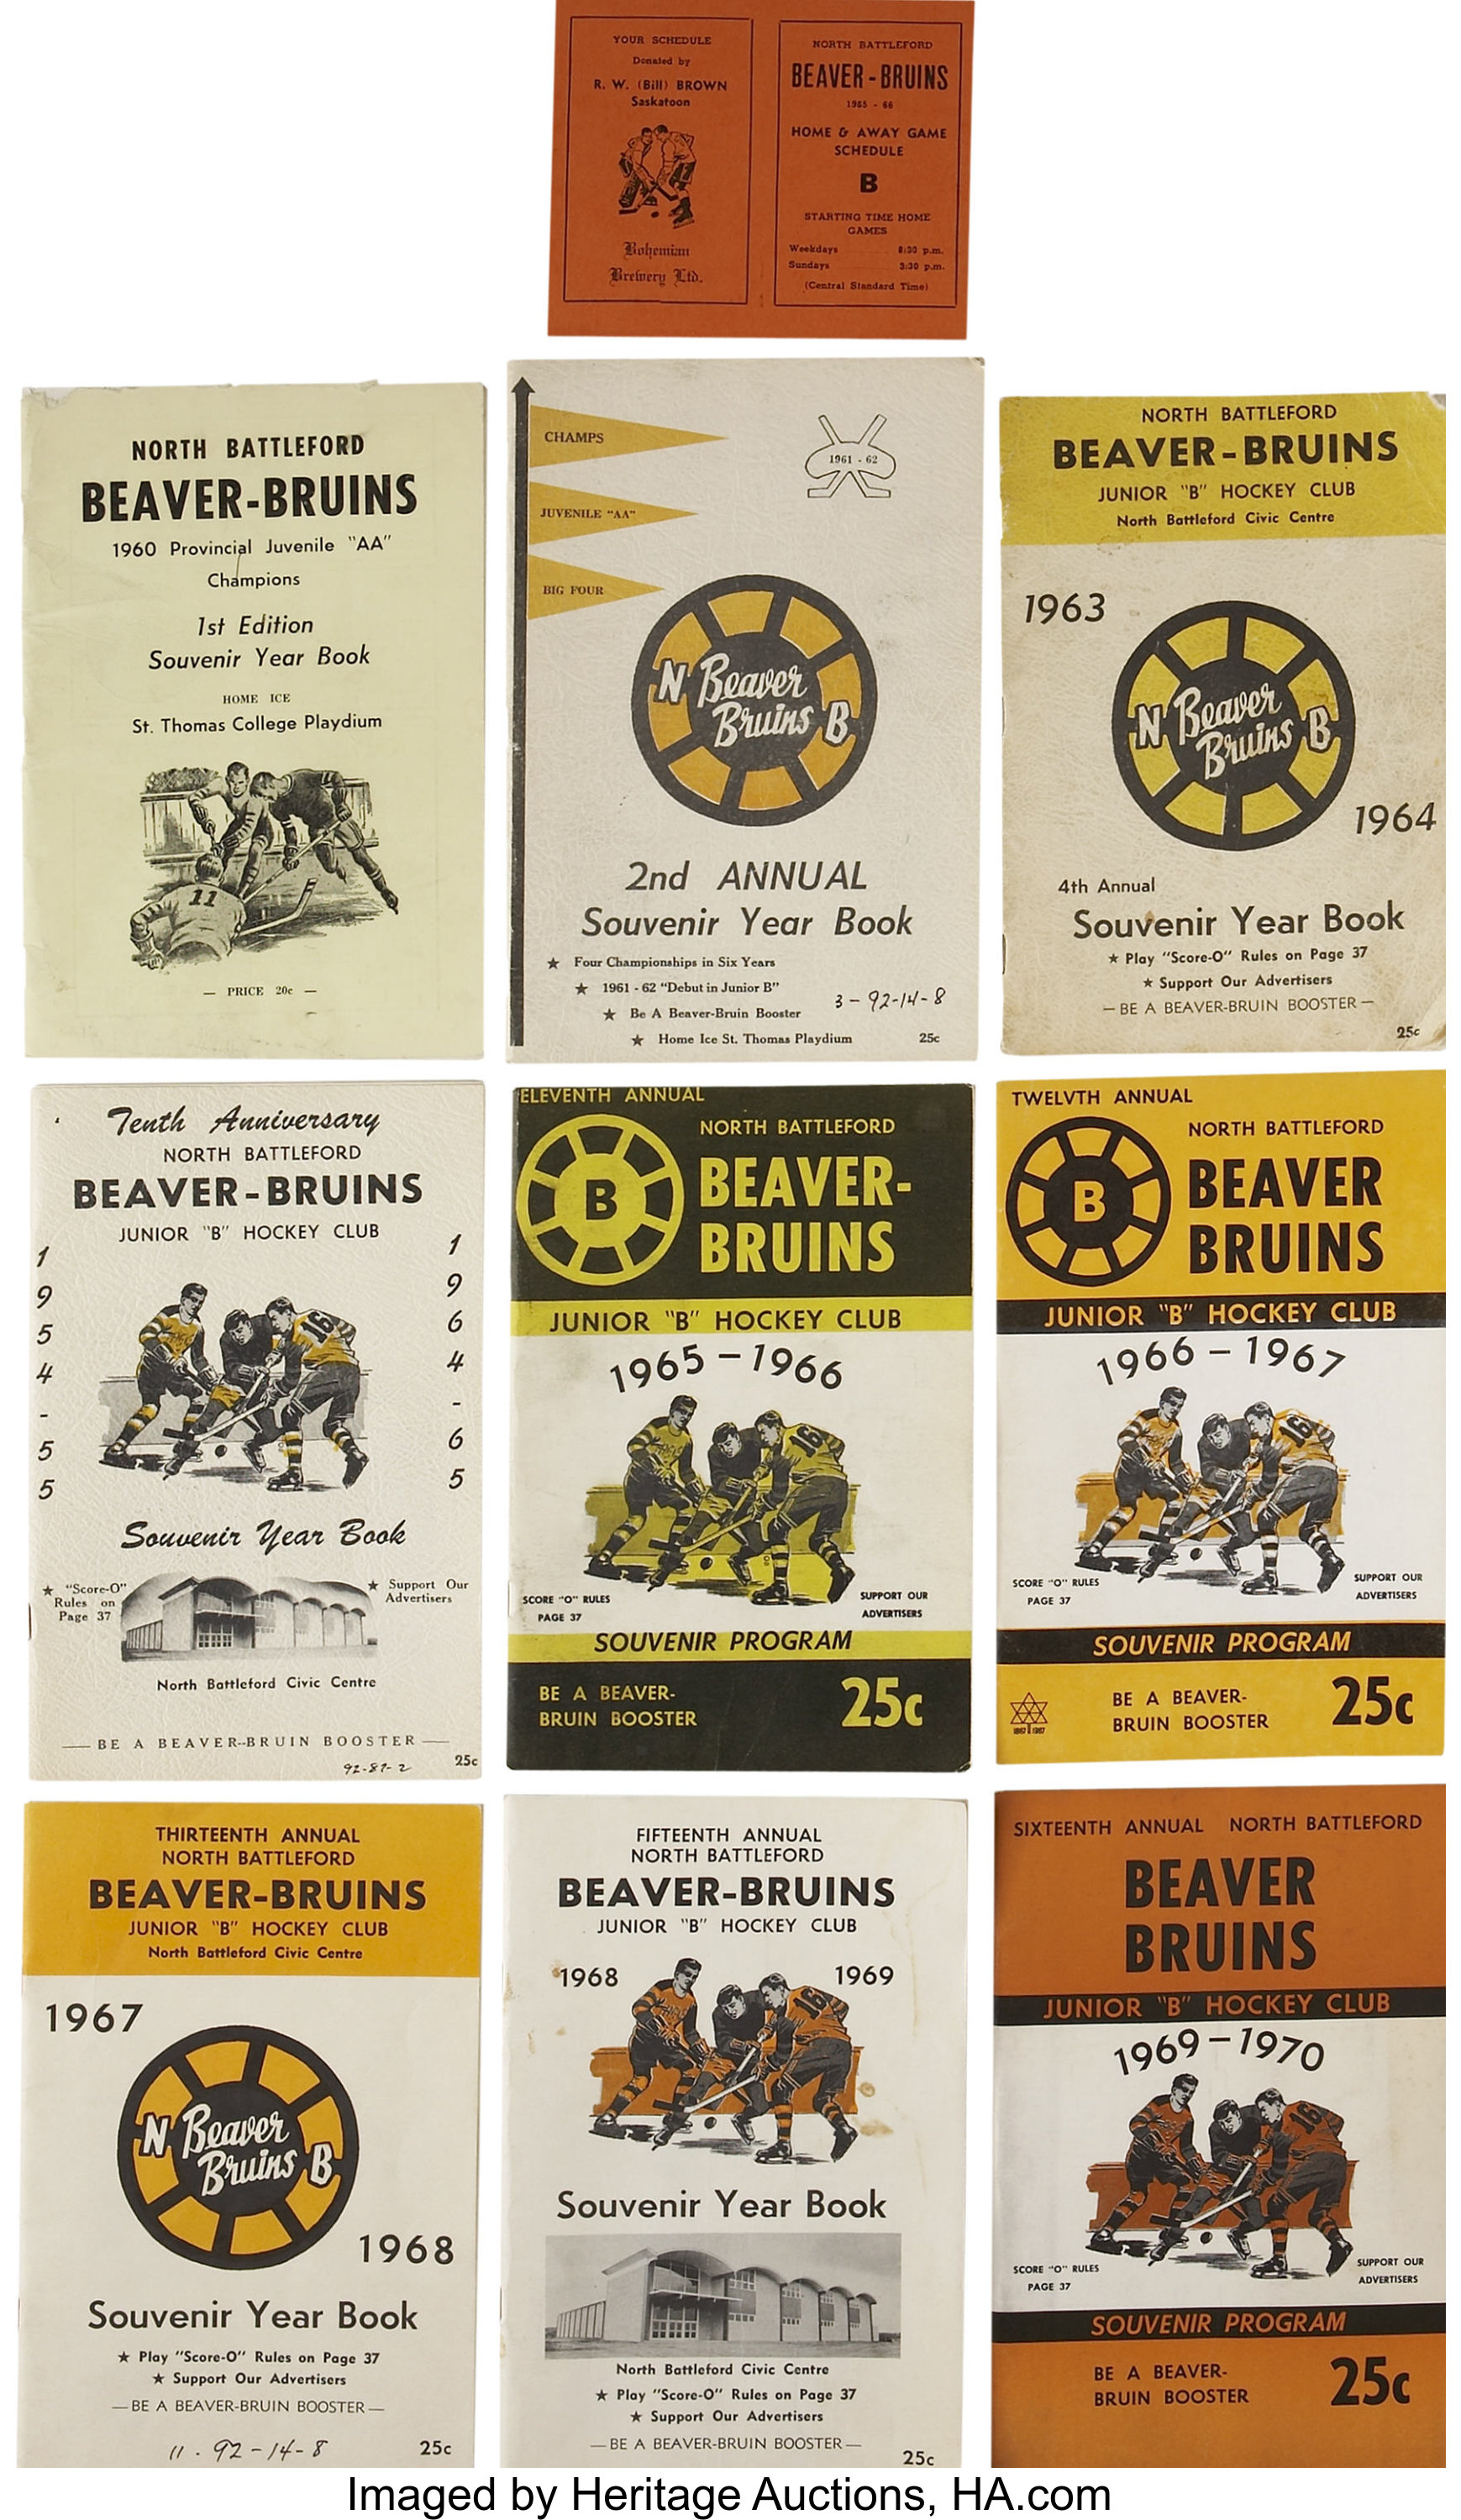 1960-70 North Battleford Beaver Bruins Official Yearbooks